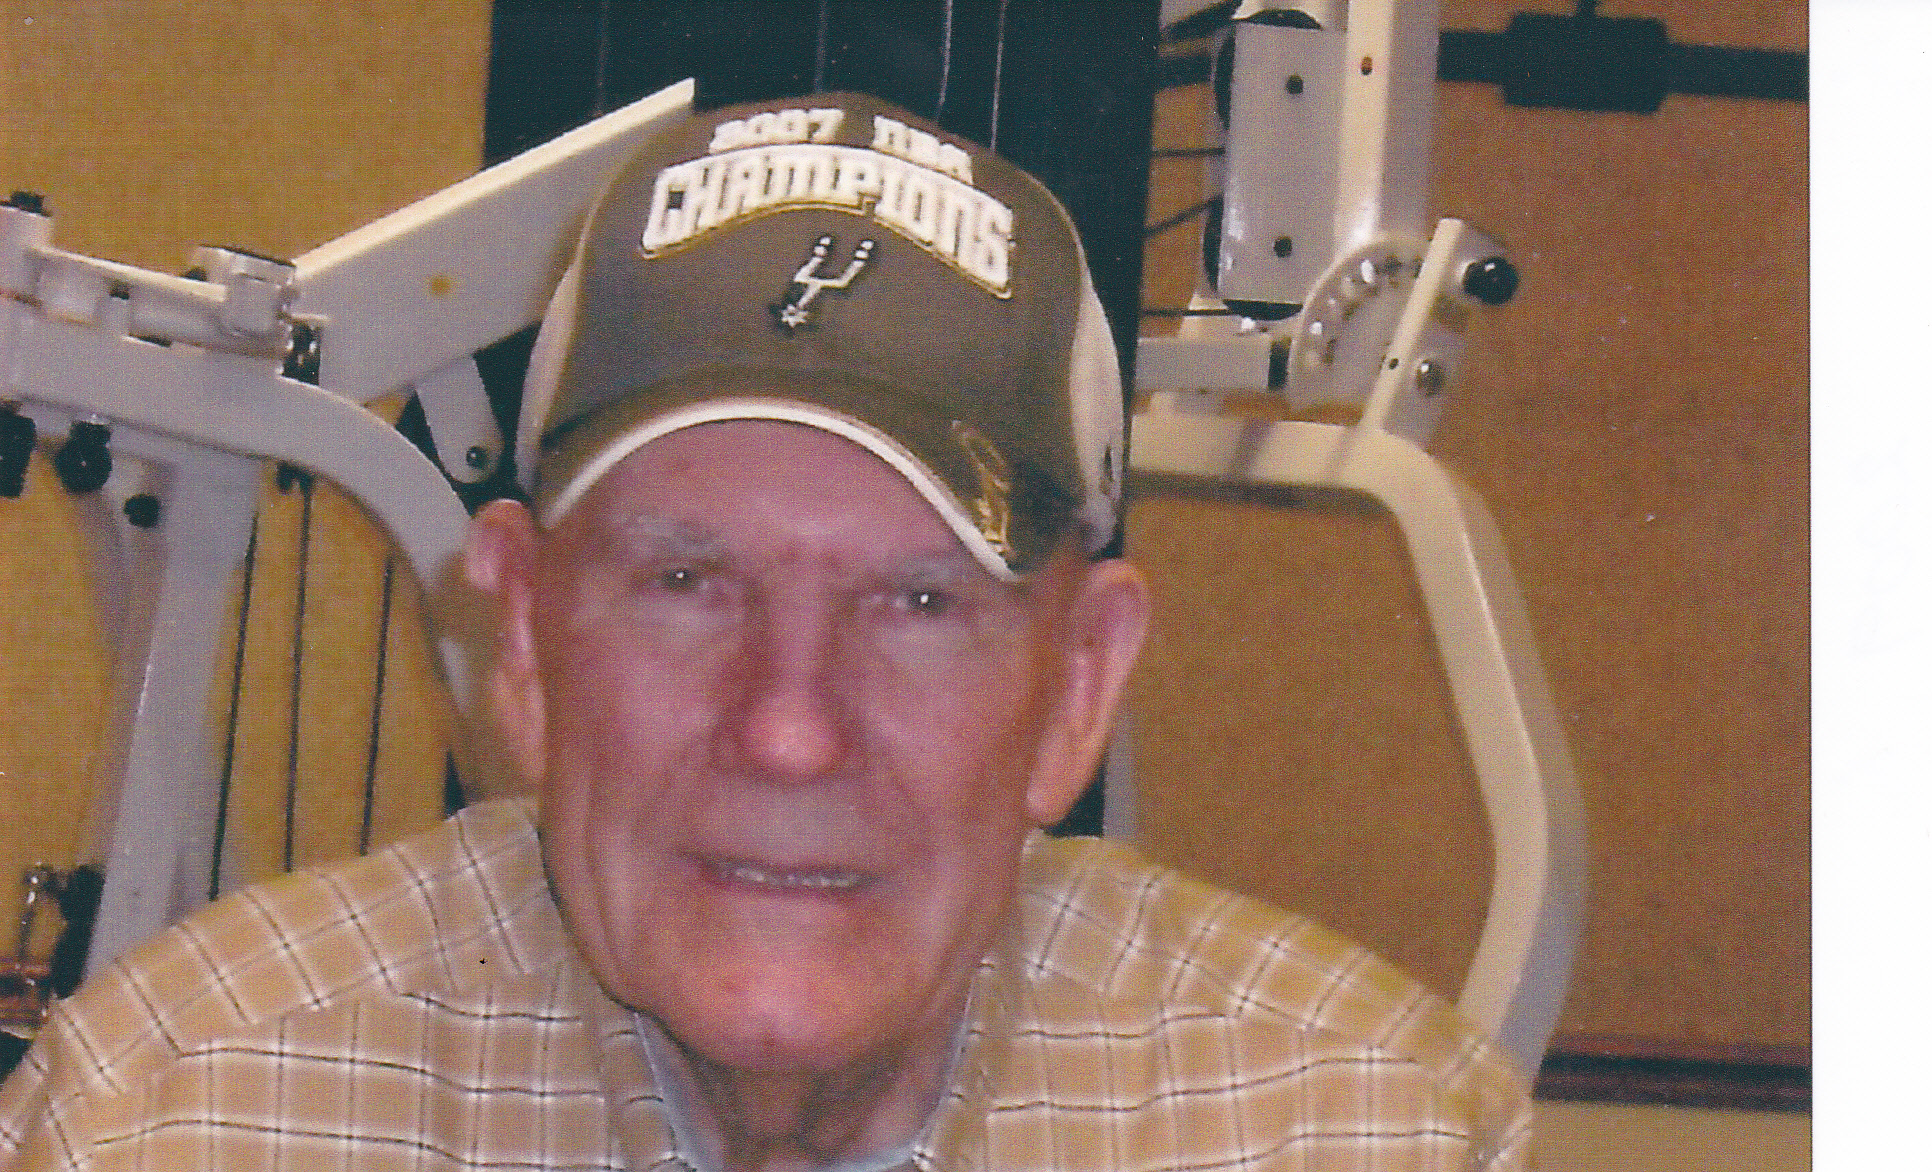 Obituary: Edward F. Tallman